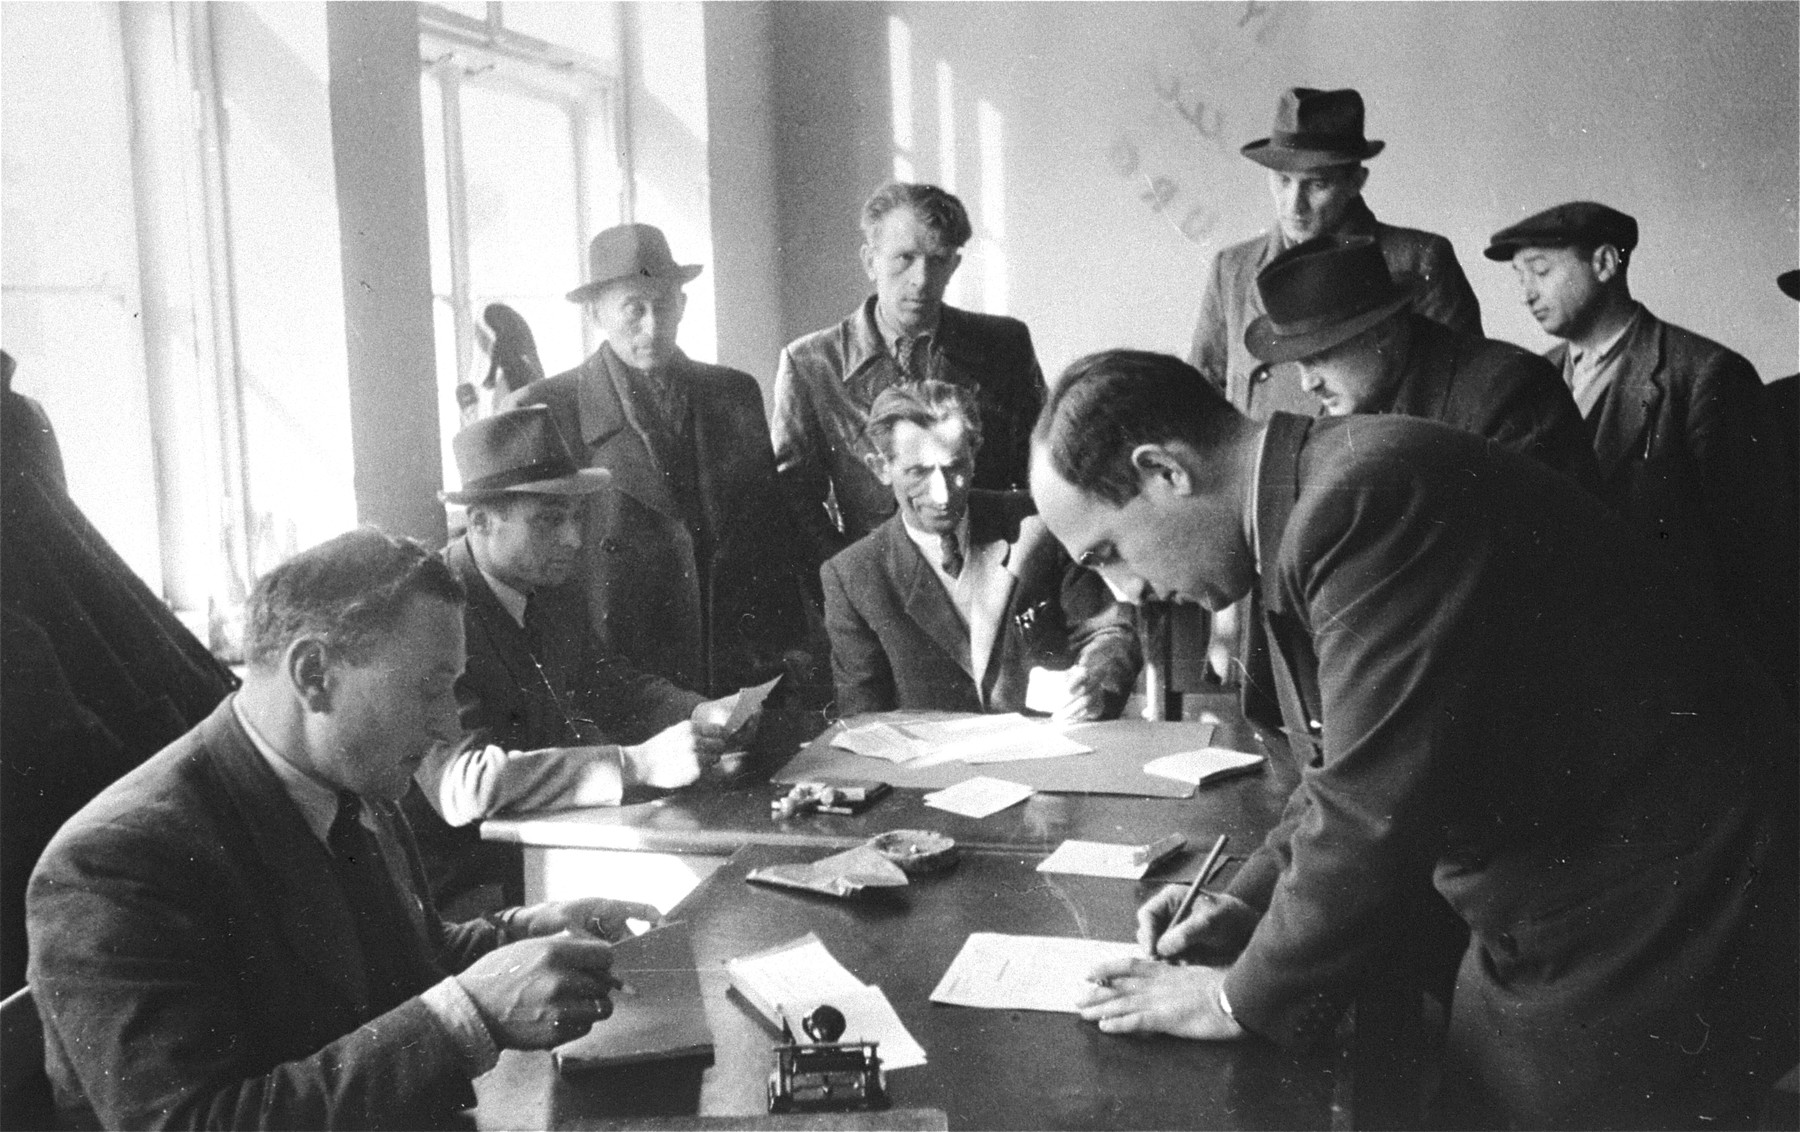 Departing DPs from the Bergen-Belsen camp sign emigration documents.  The DPs are on their way to Palestine.